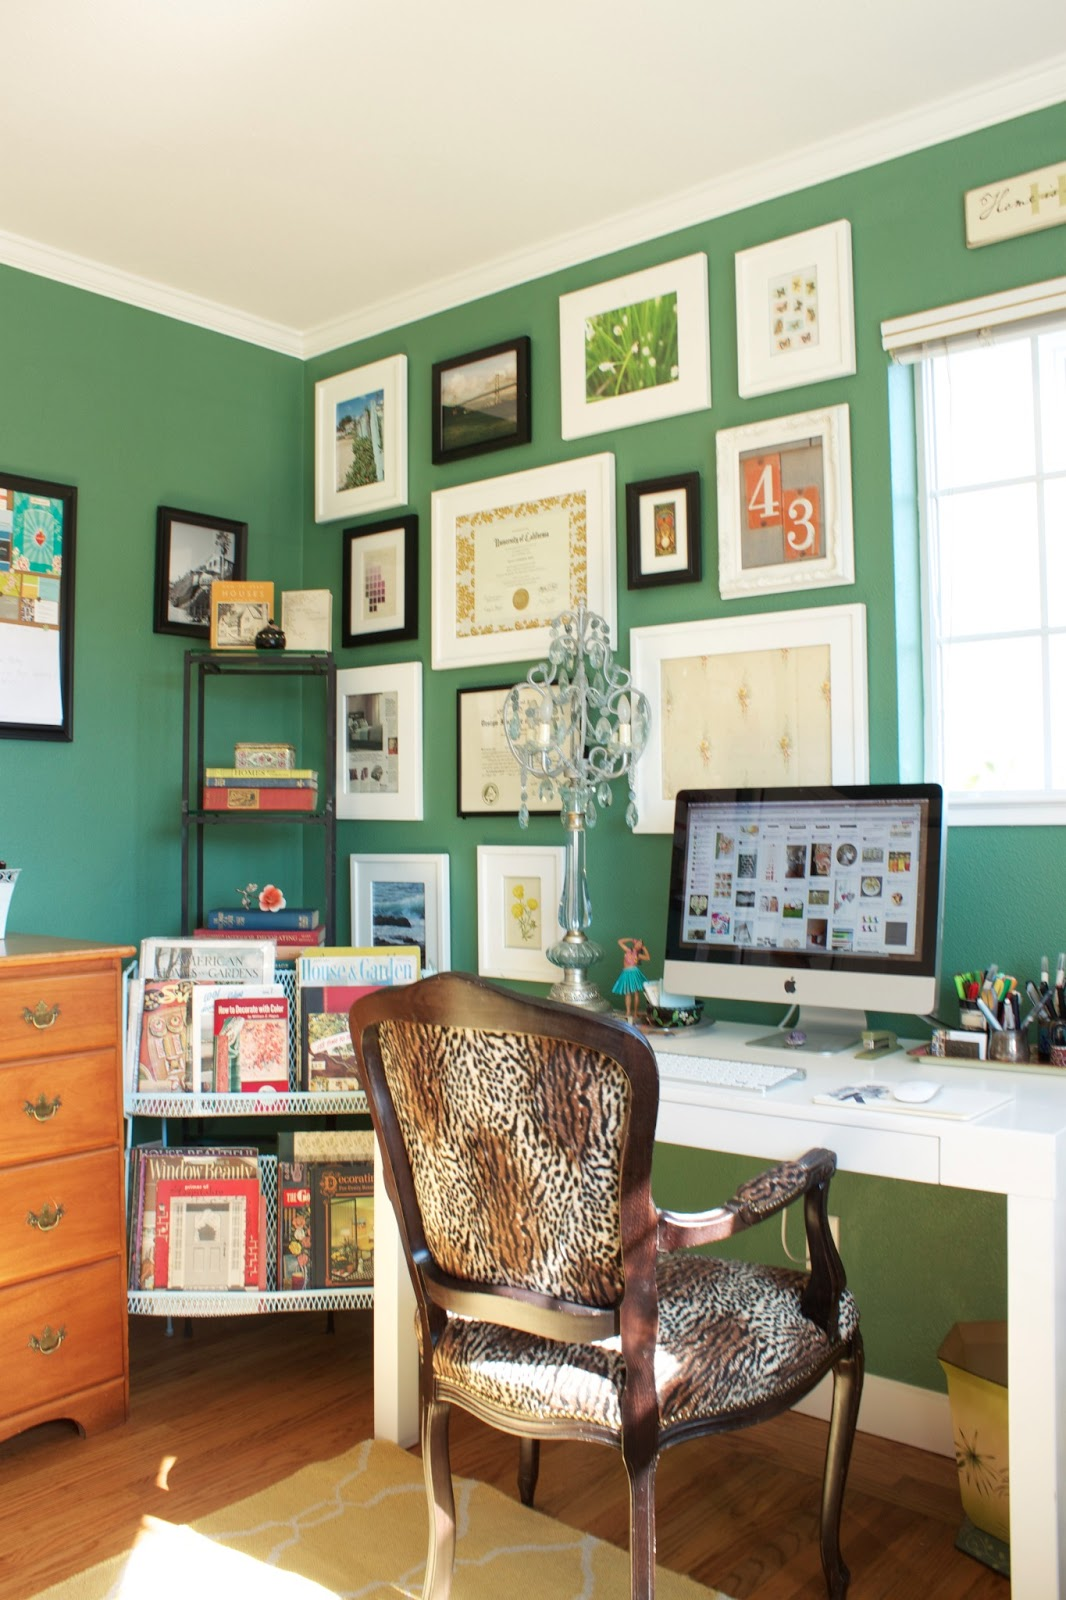 Home office paint colors home painting ideas - Home office painting ideas ...